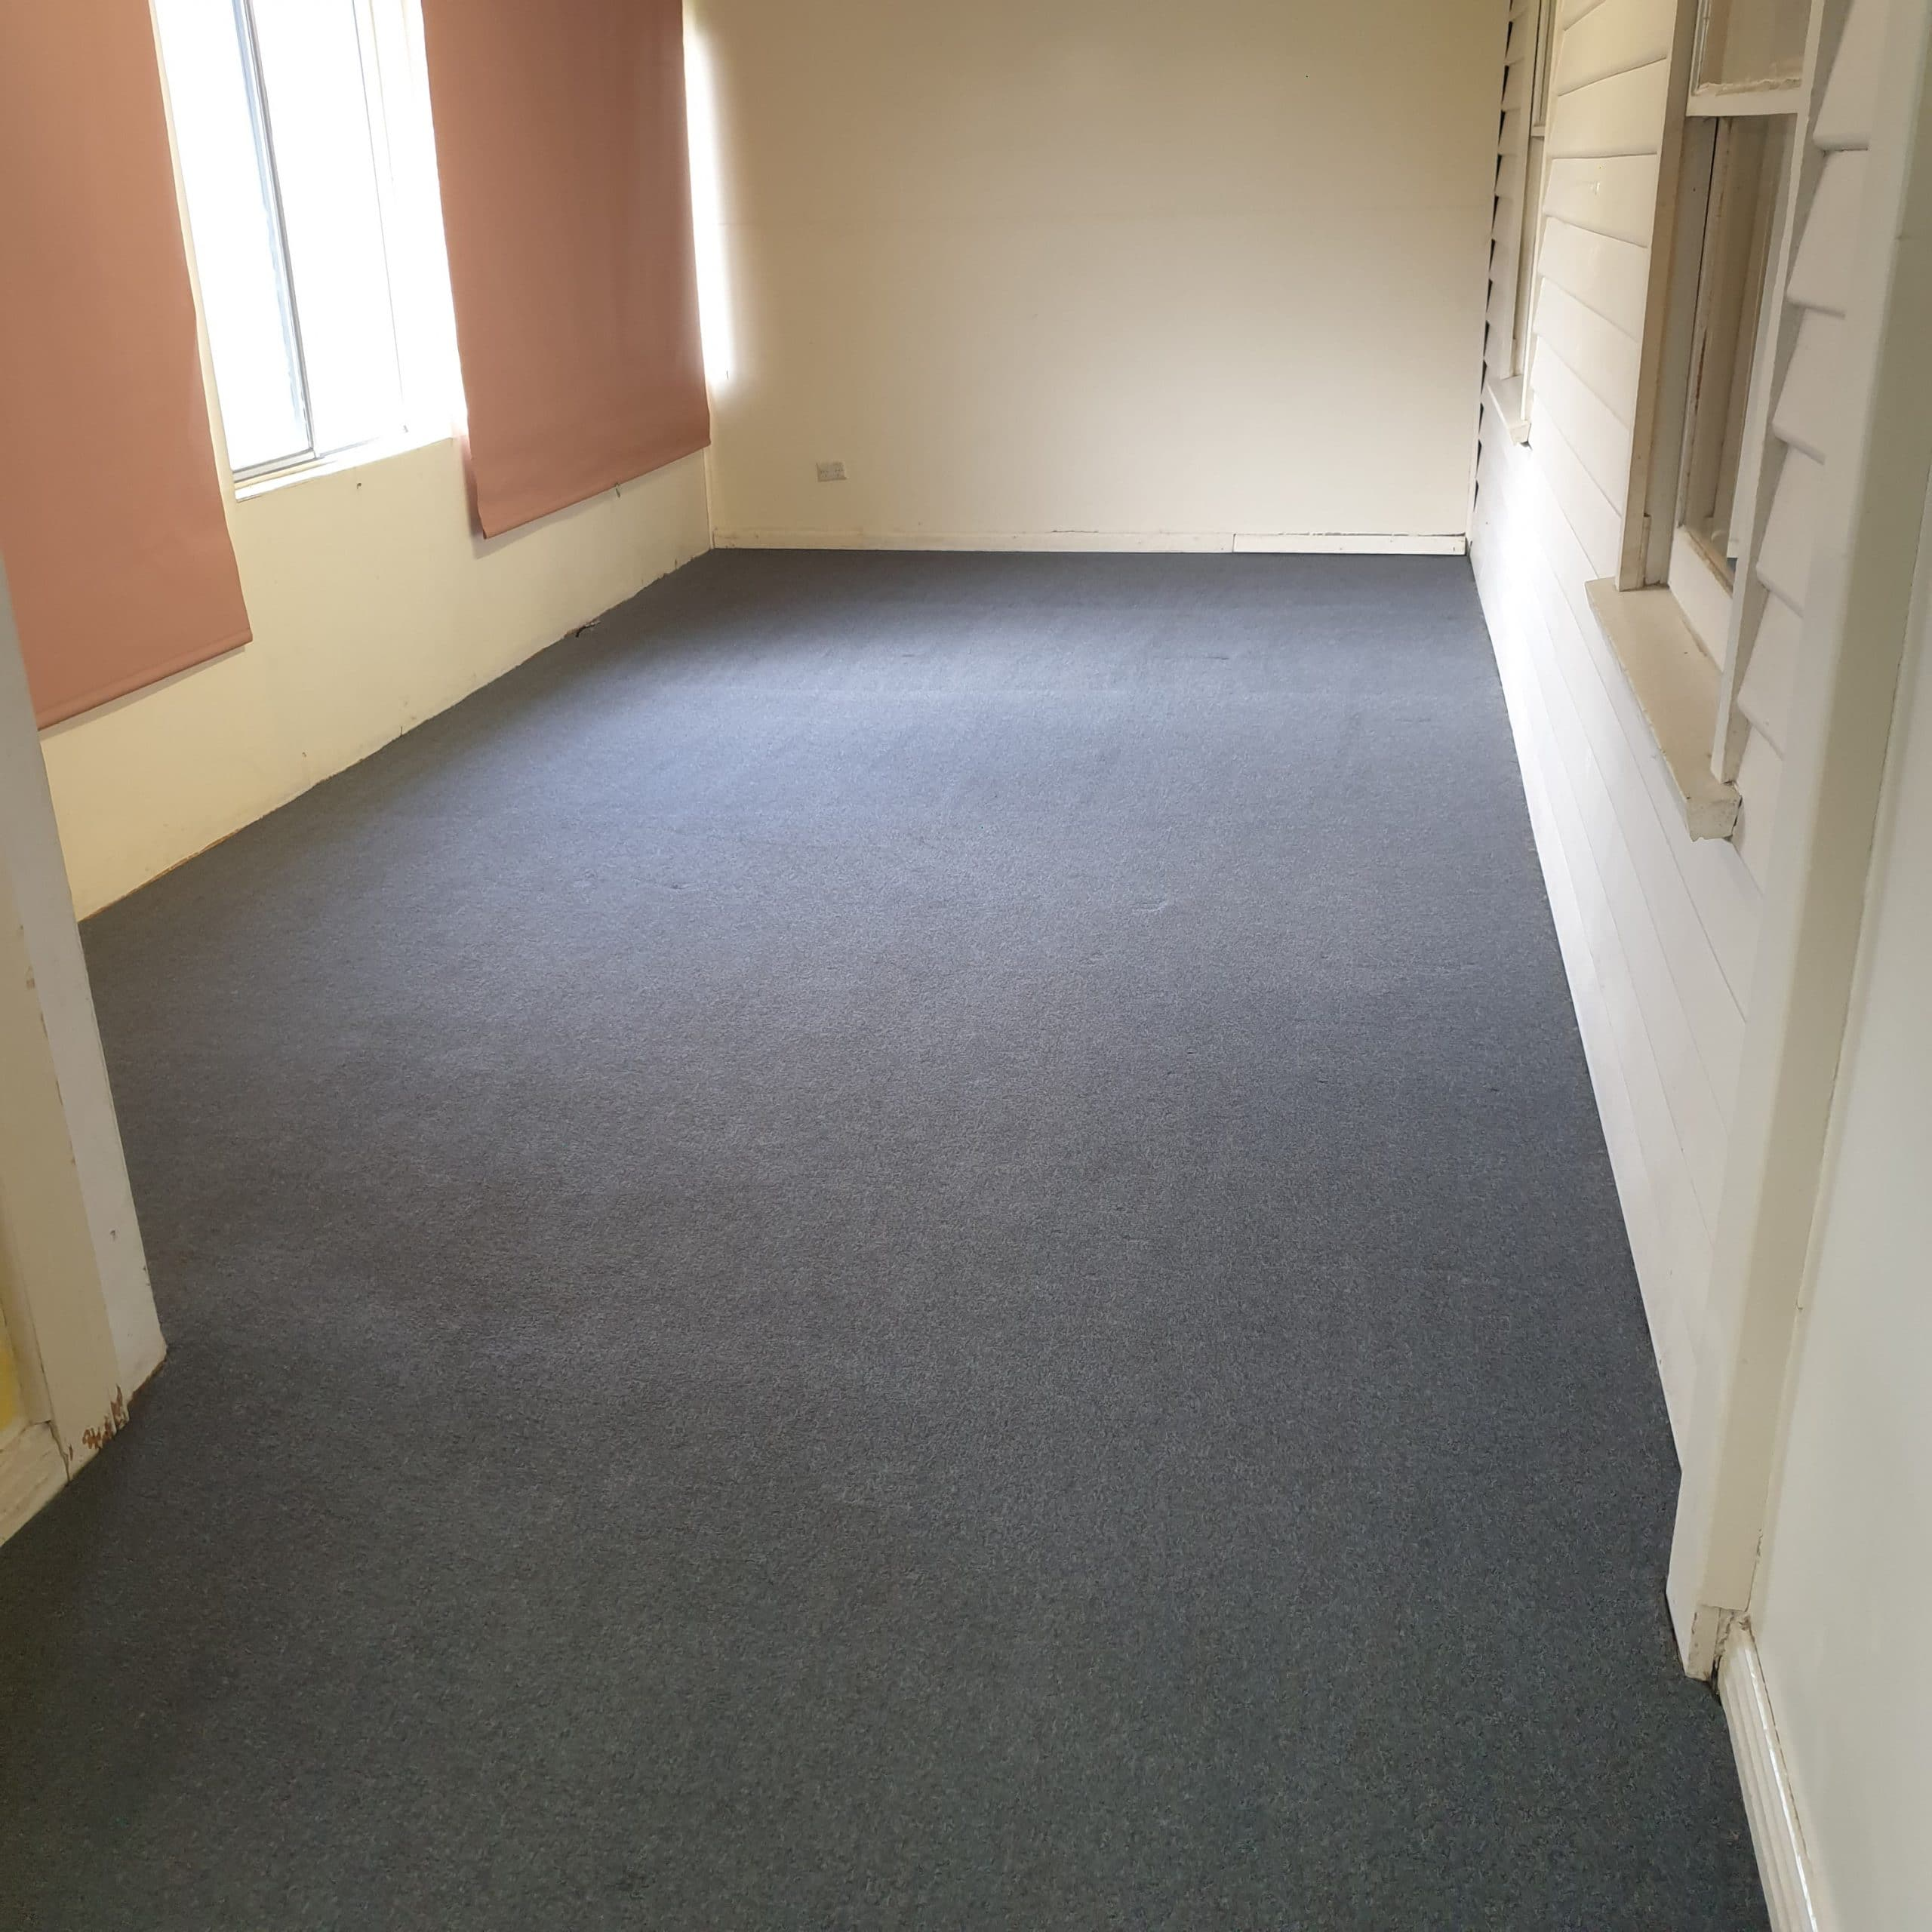 How to Choose Carpet Cleaning Company